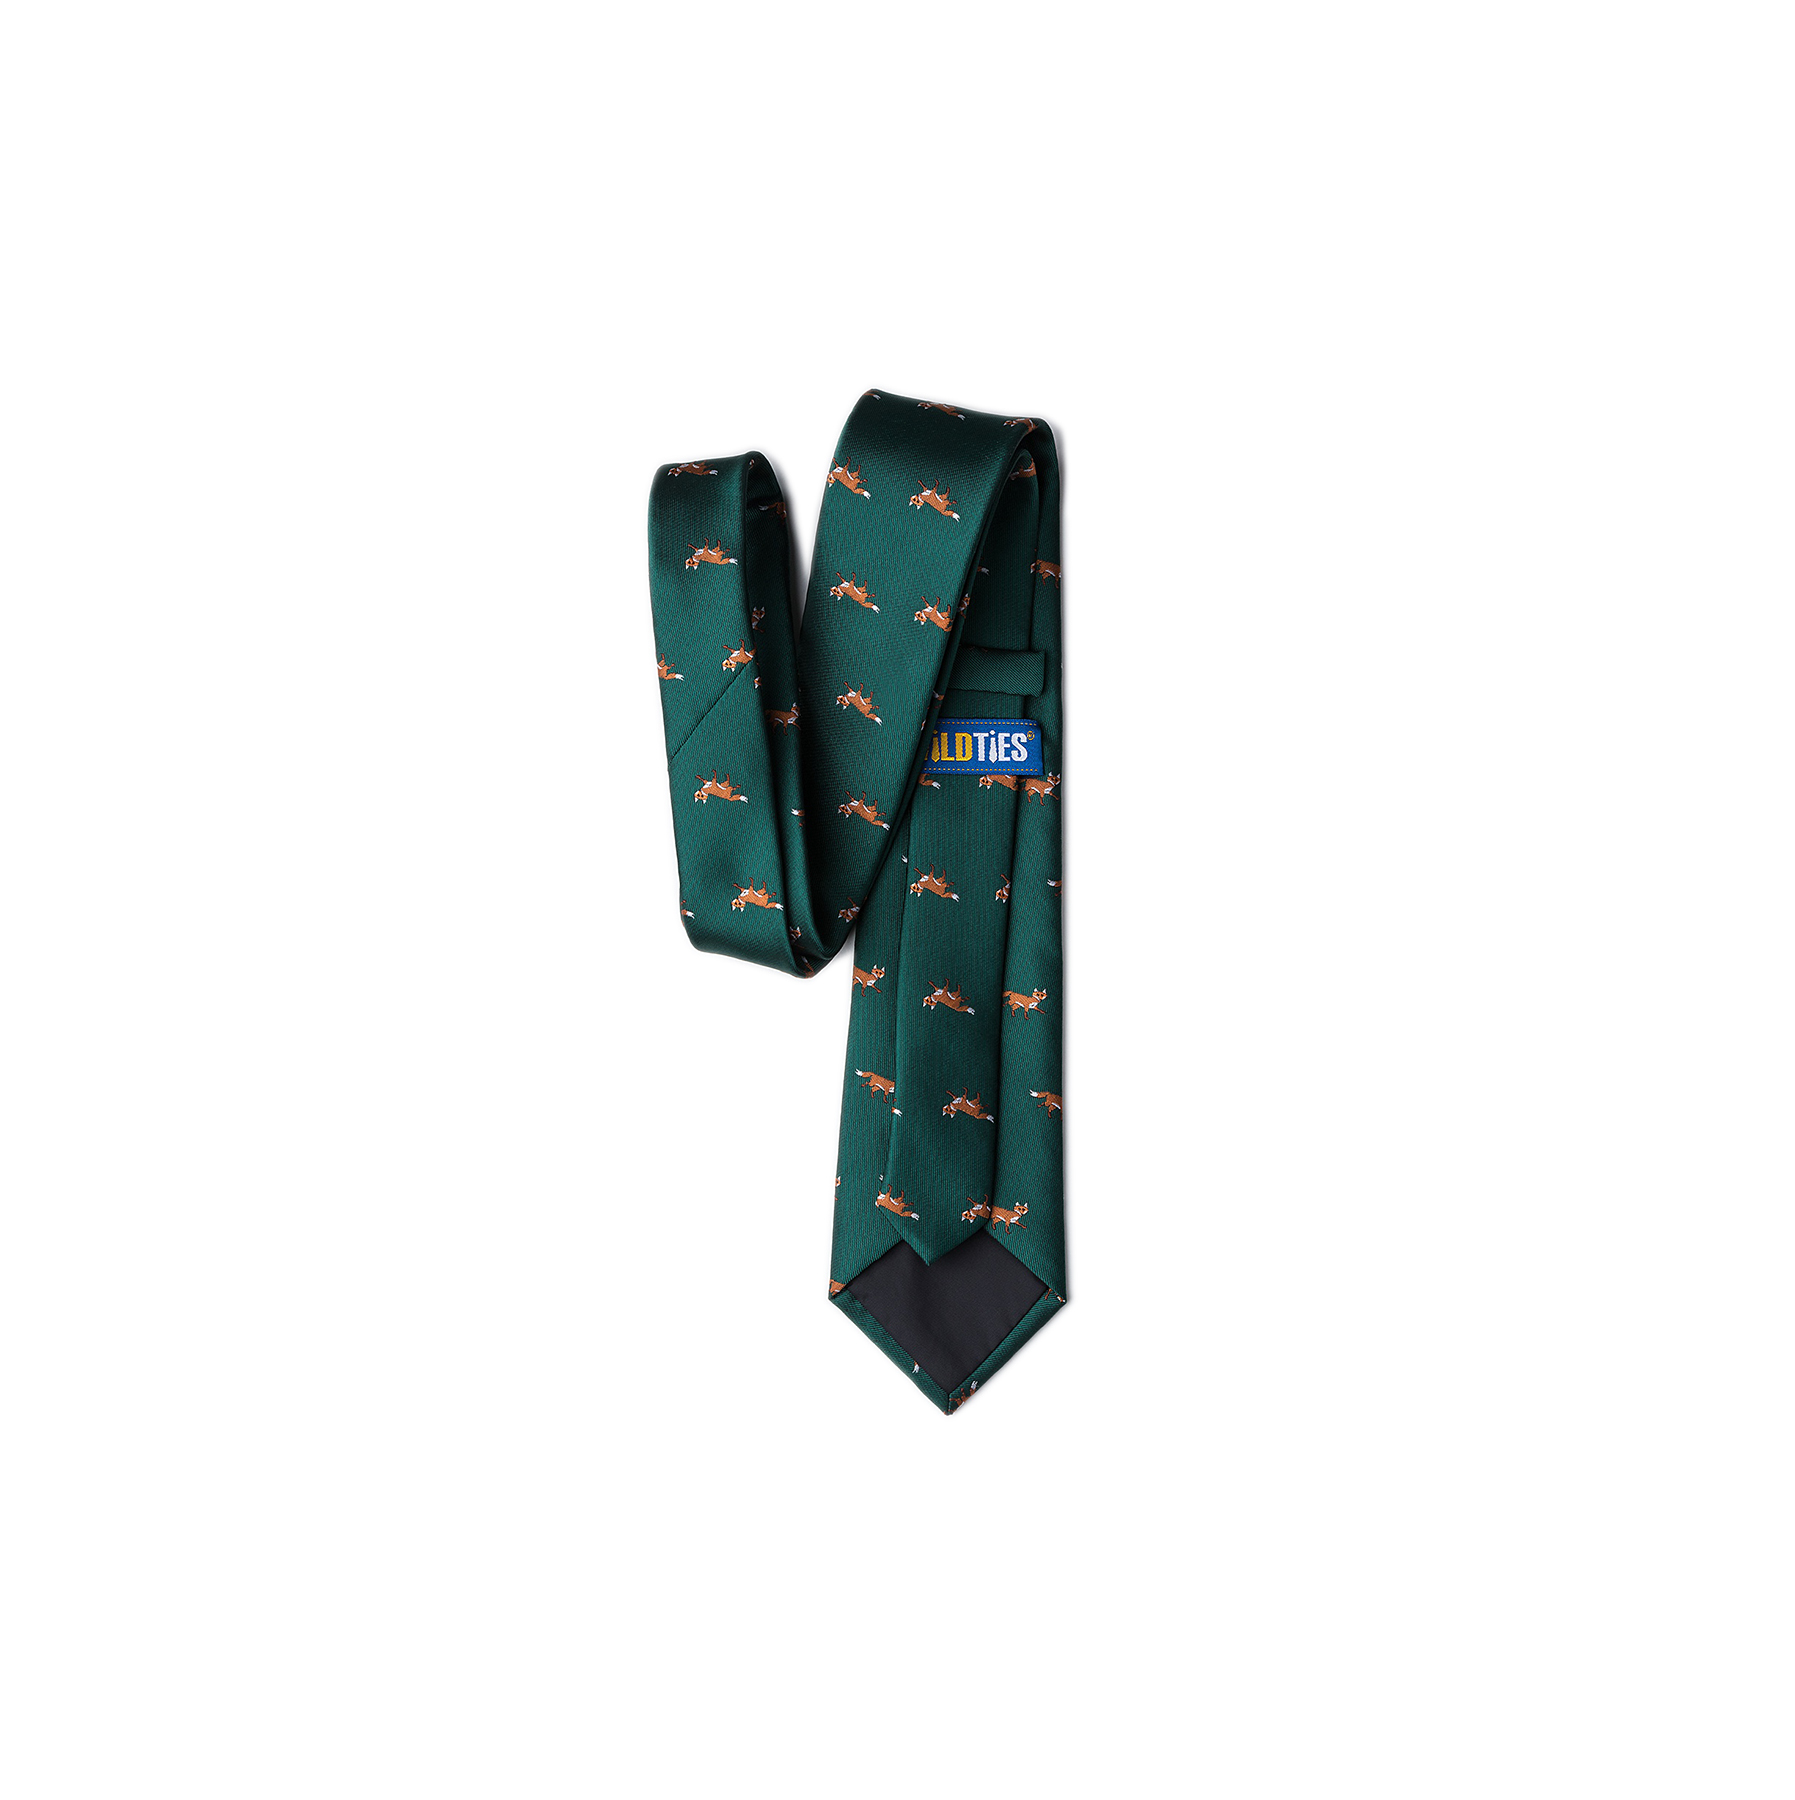 Valentine Gift Ideas for Men: Prowling Foxes Tie